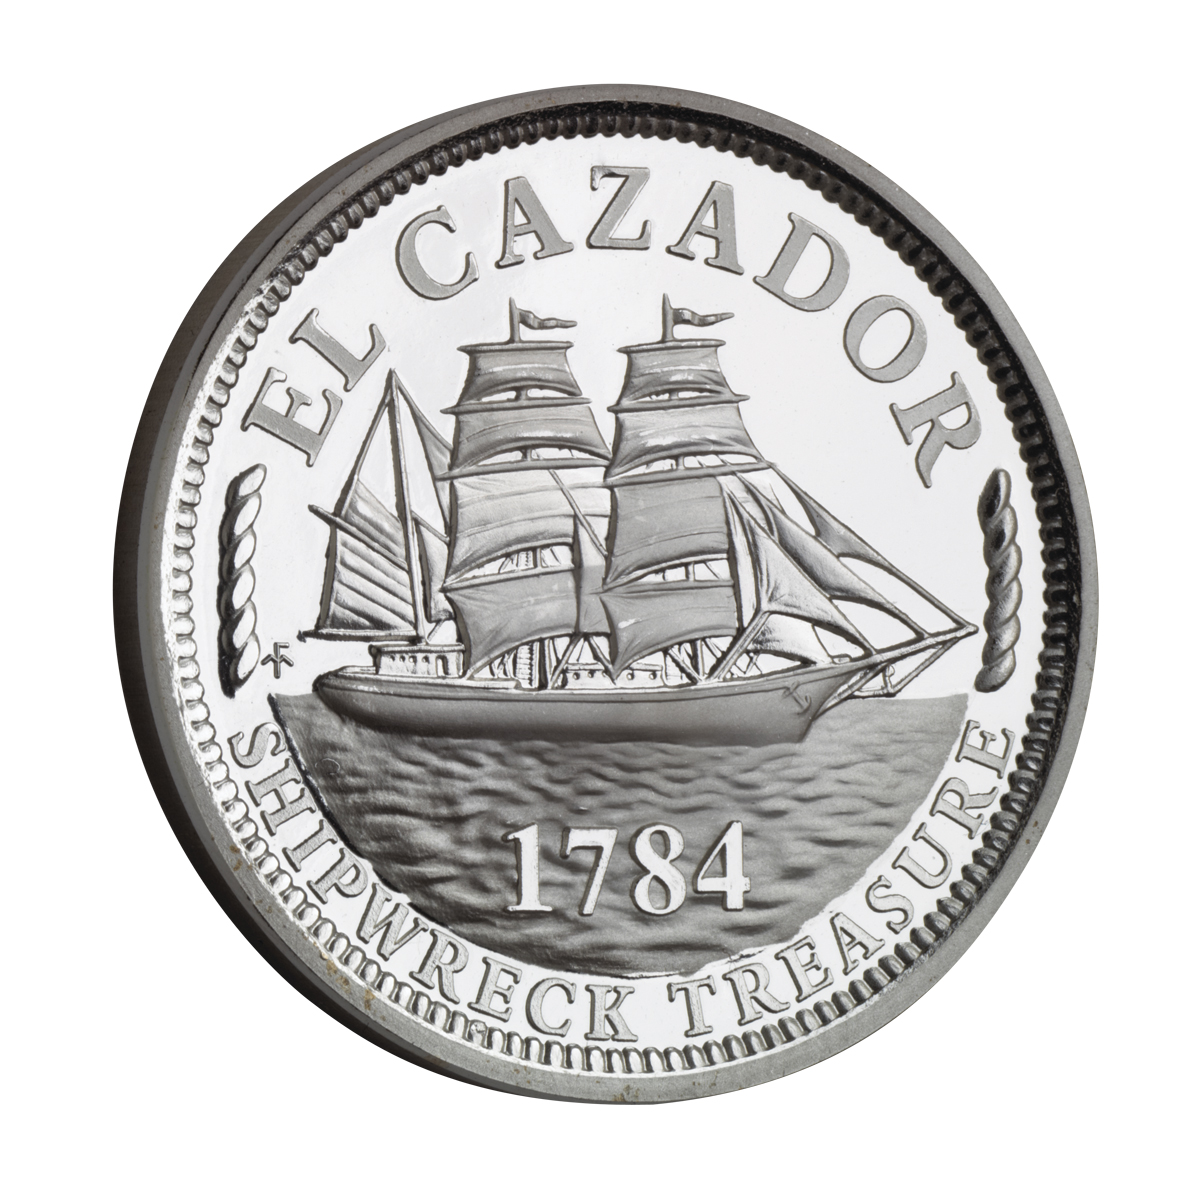 TREASURE COINS OF THE WORLD - EL CAZADOR SILVER TRIBUTE PROOF MEDALLION